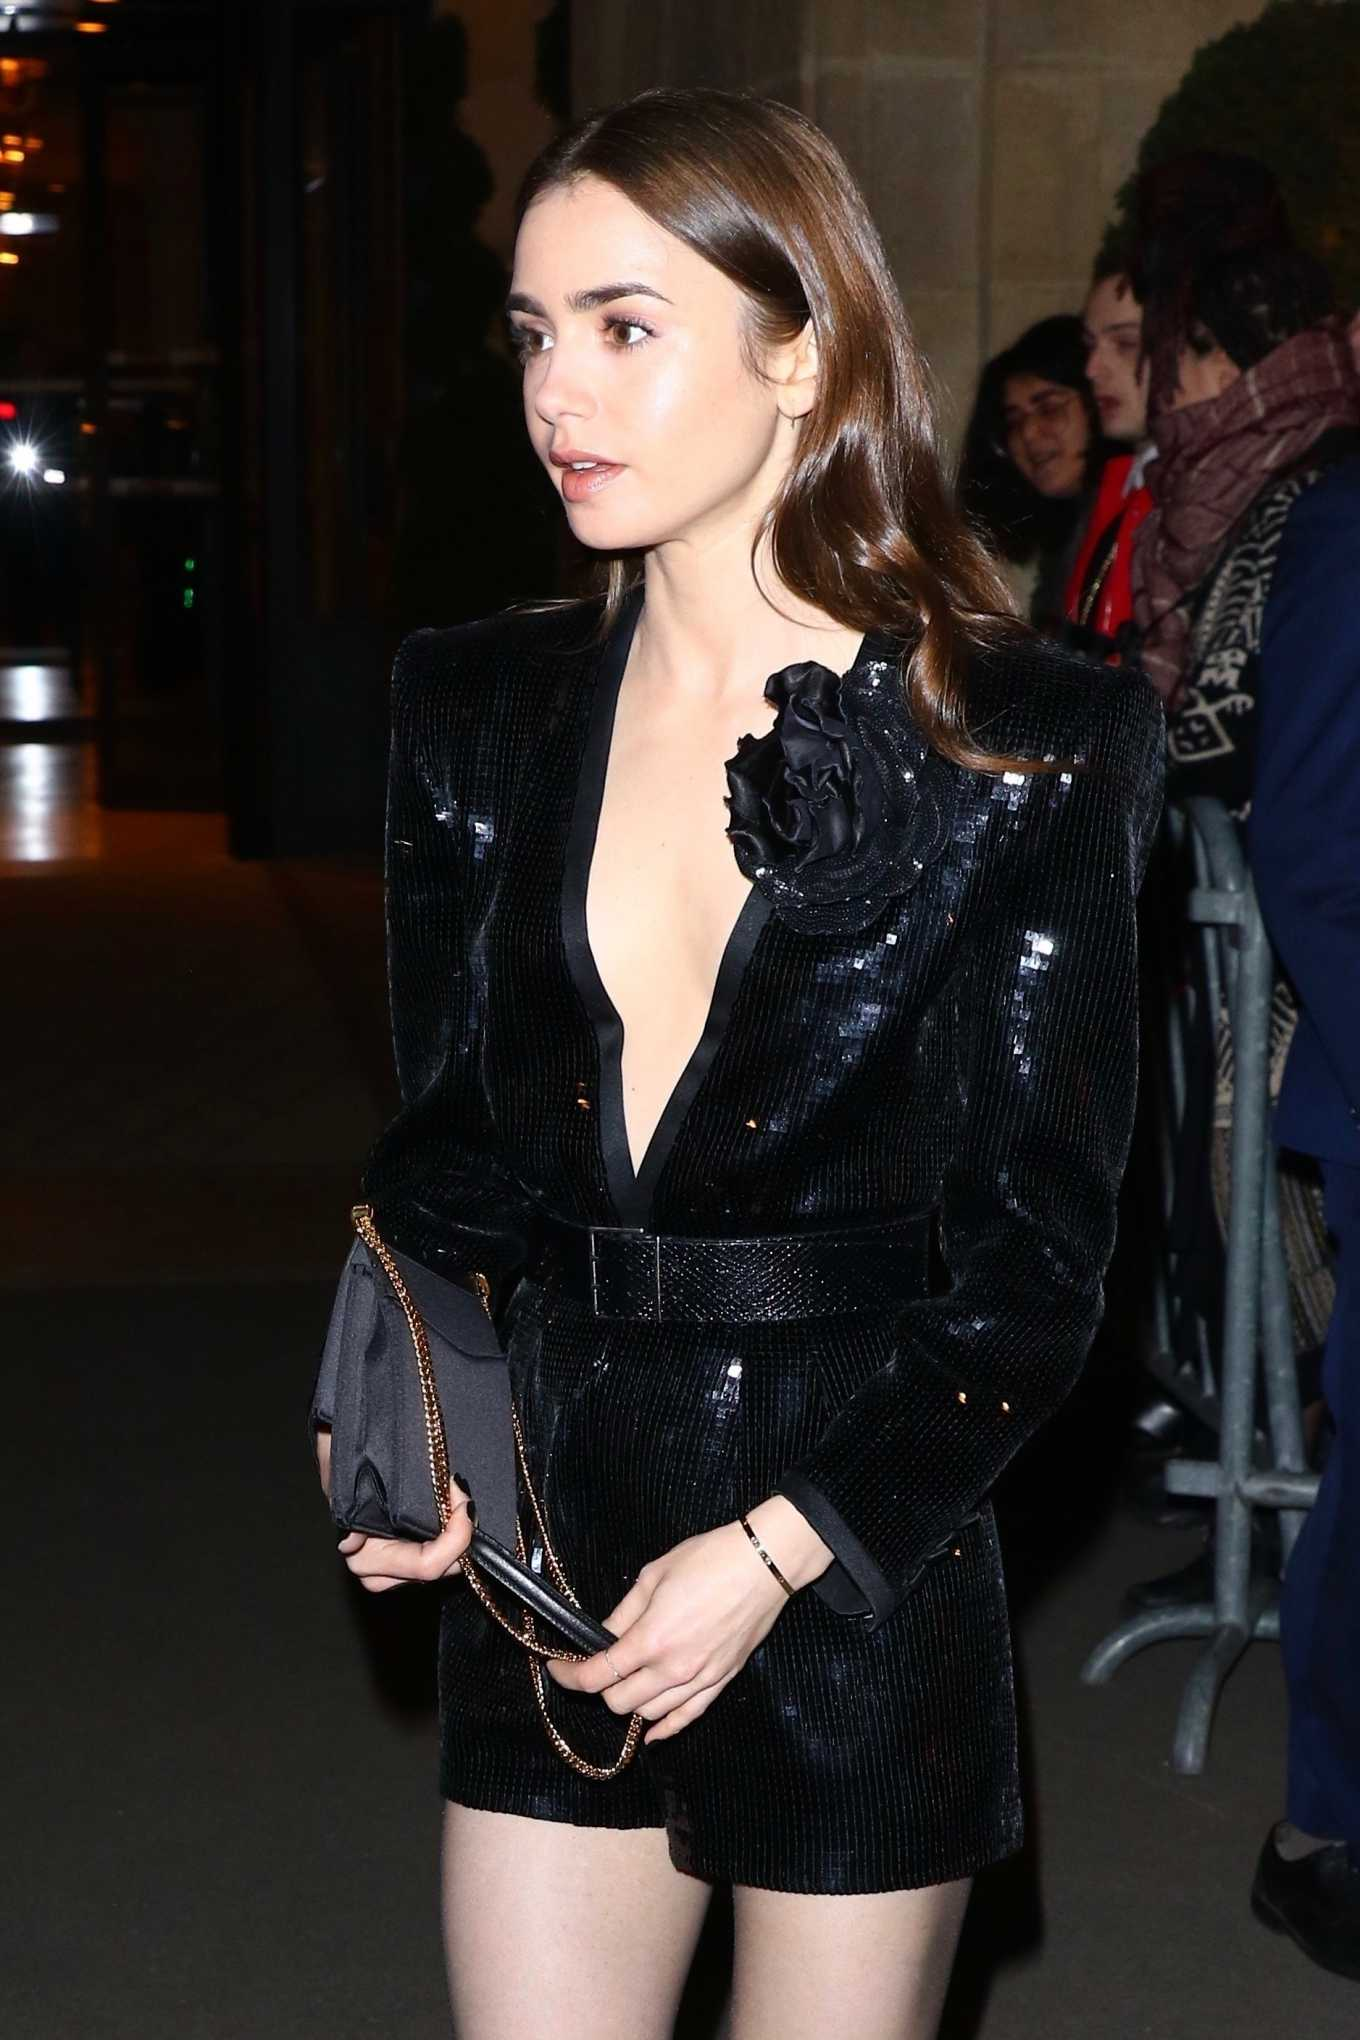 Lily Collins - Outside the Saint Laurent Show at Paris Fashion Week 2020